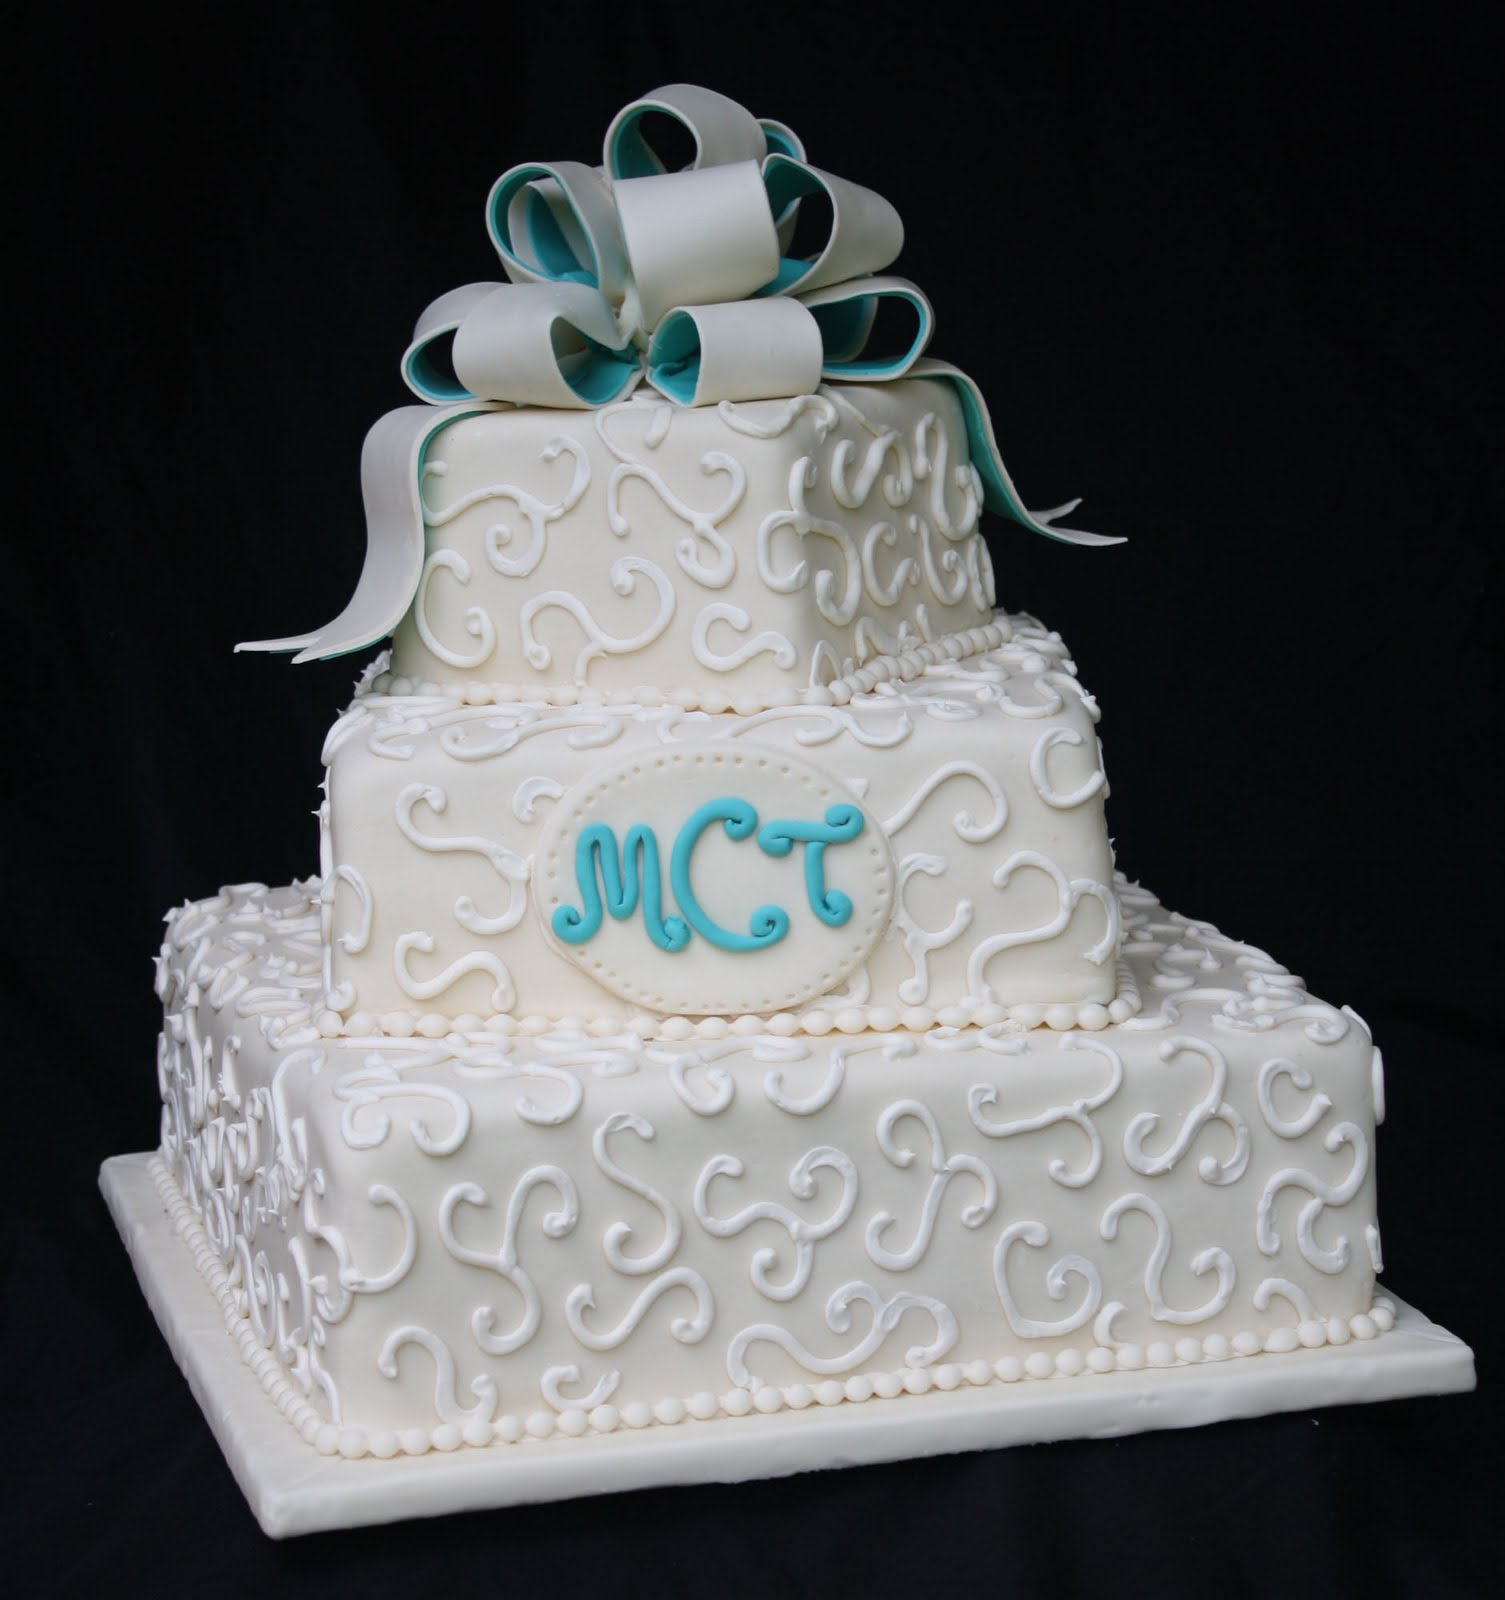 Marva\'s blog: An Ivory and Teal Wedding Cake